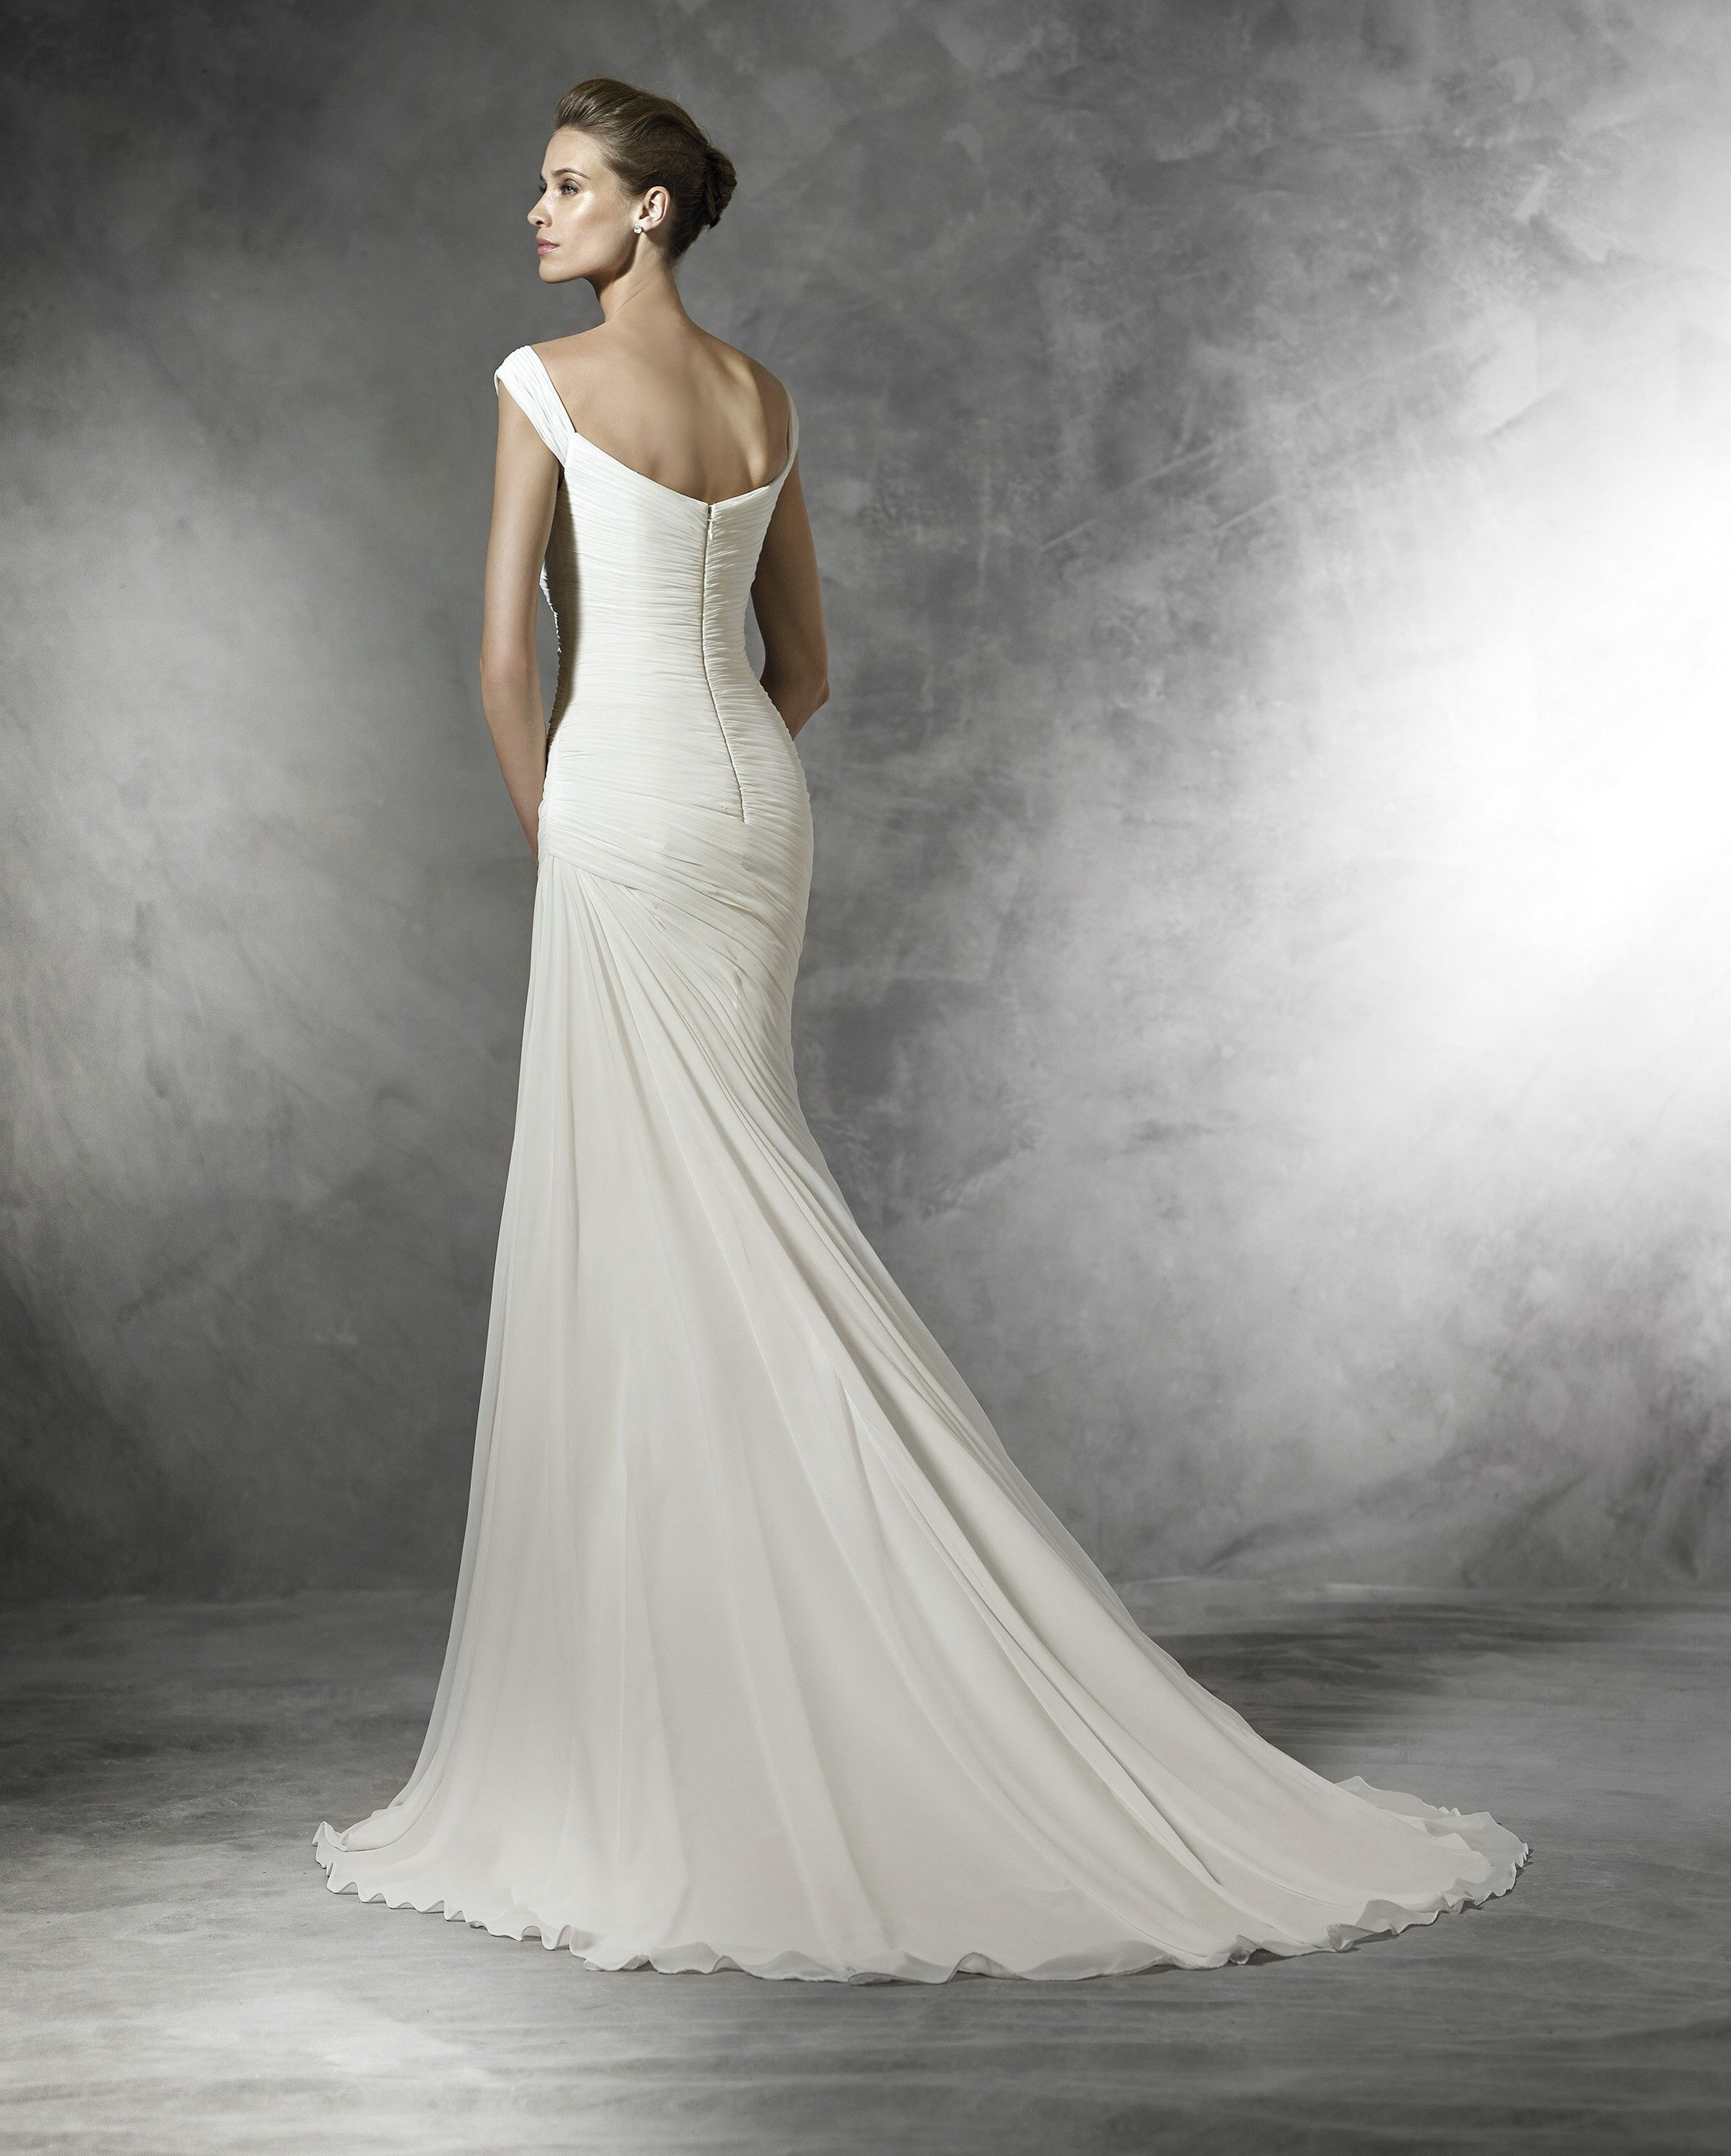 Wedding Dresses, Bridesmaid Dresses, Prom Dresses And